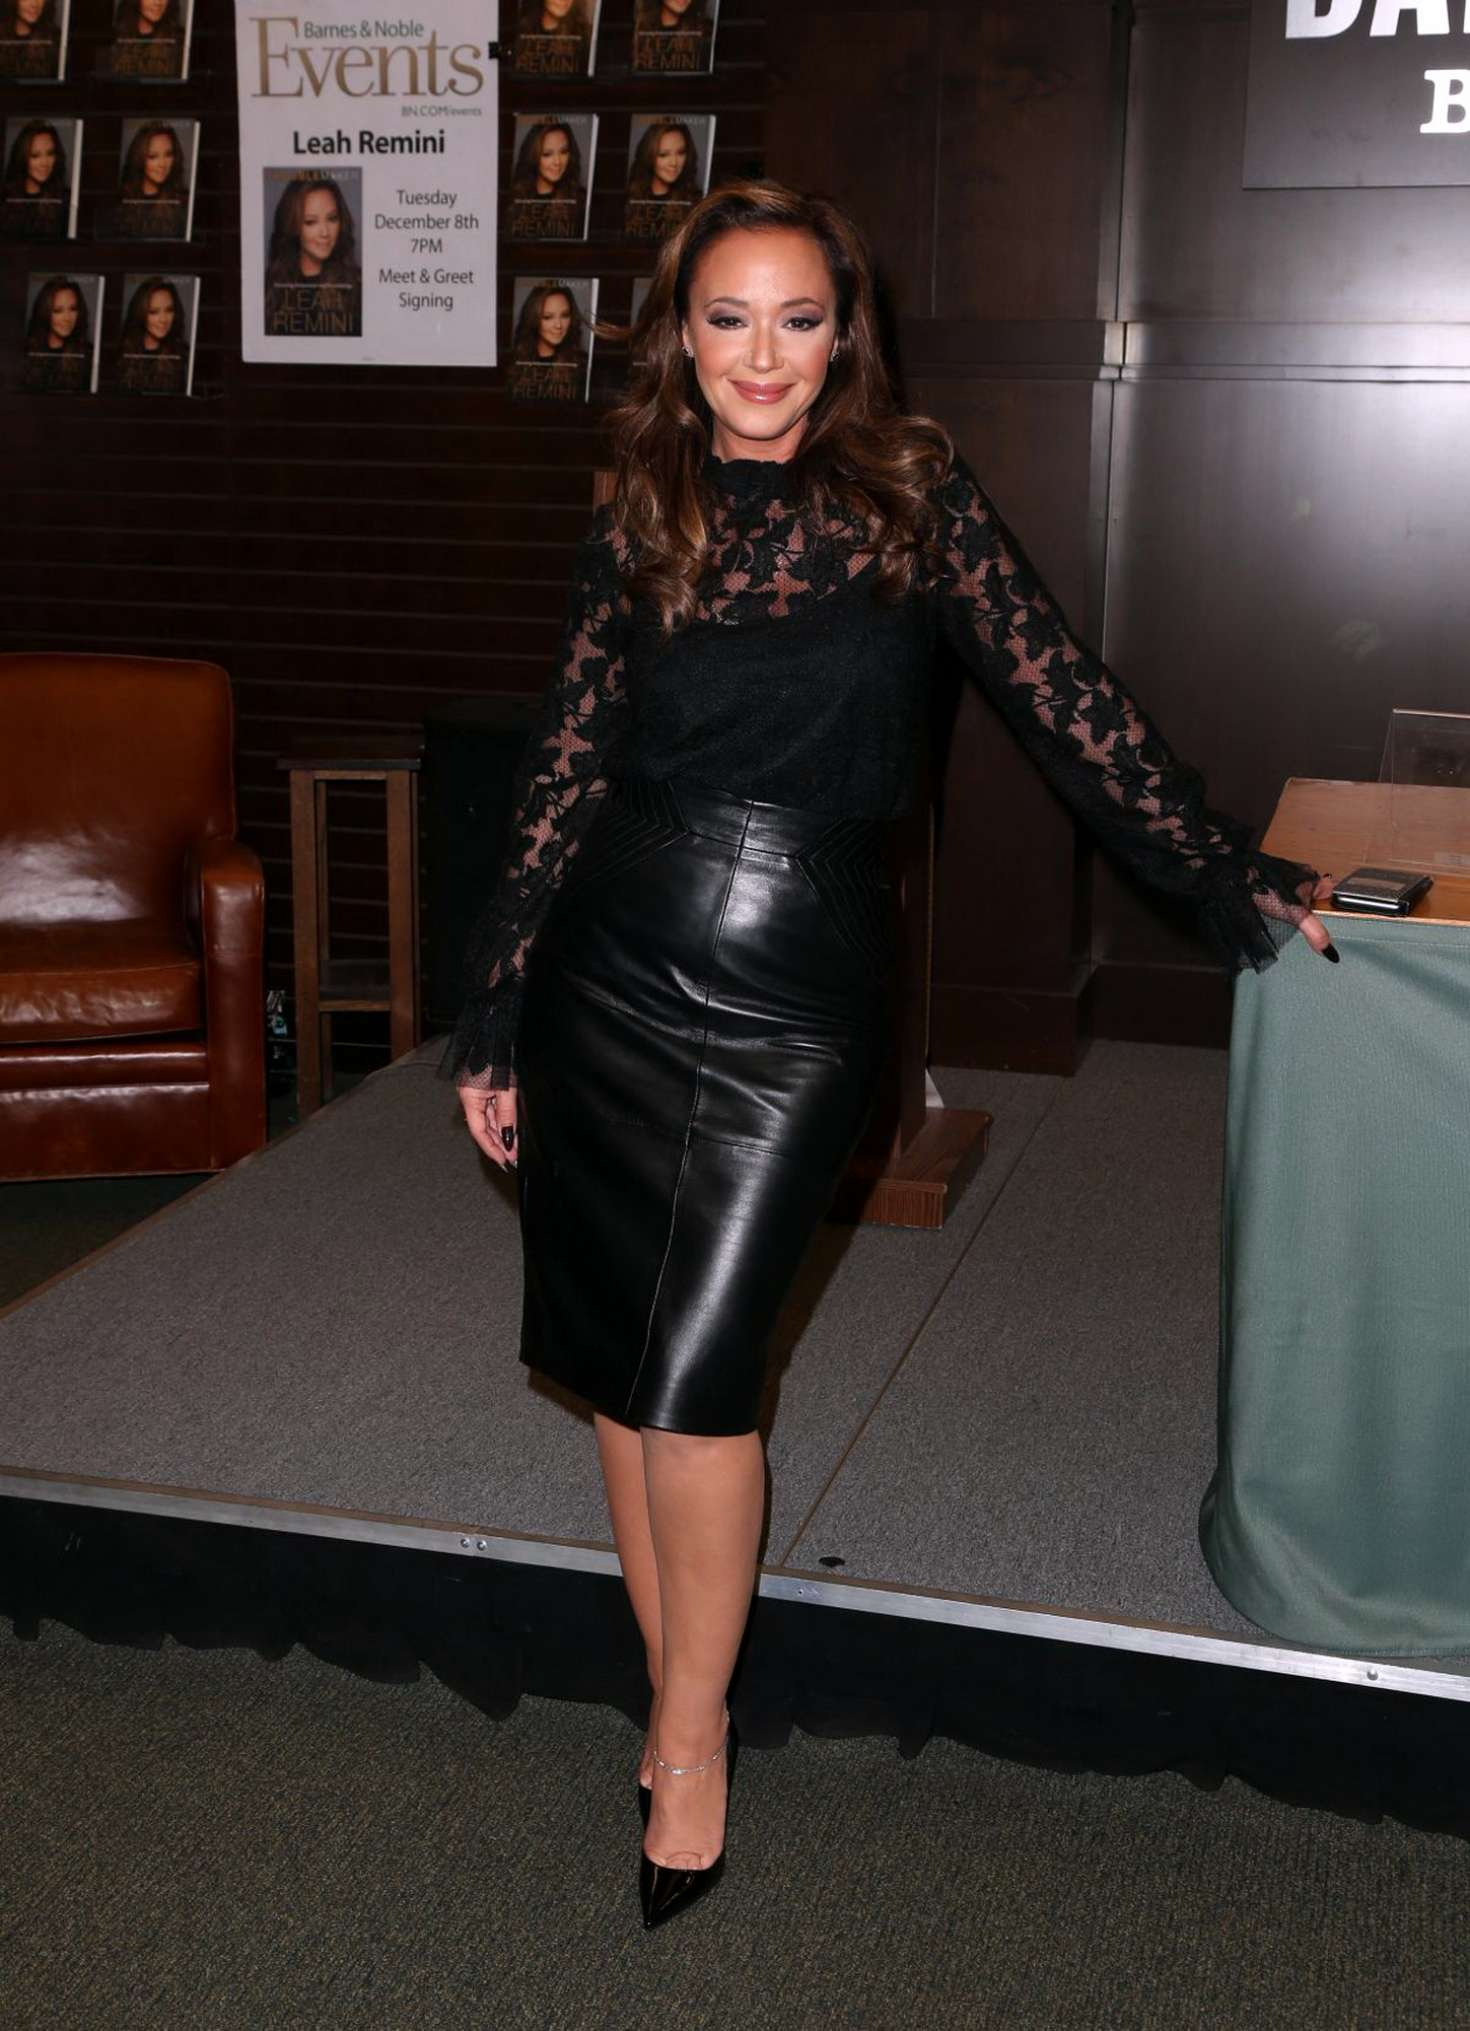 Leah Remini Signing Session of her Troublemaker-Surviving Hollywood Scientology Book